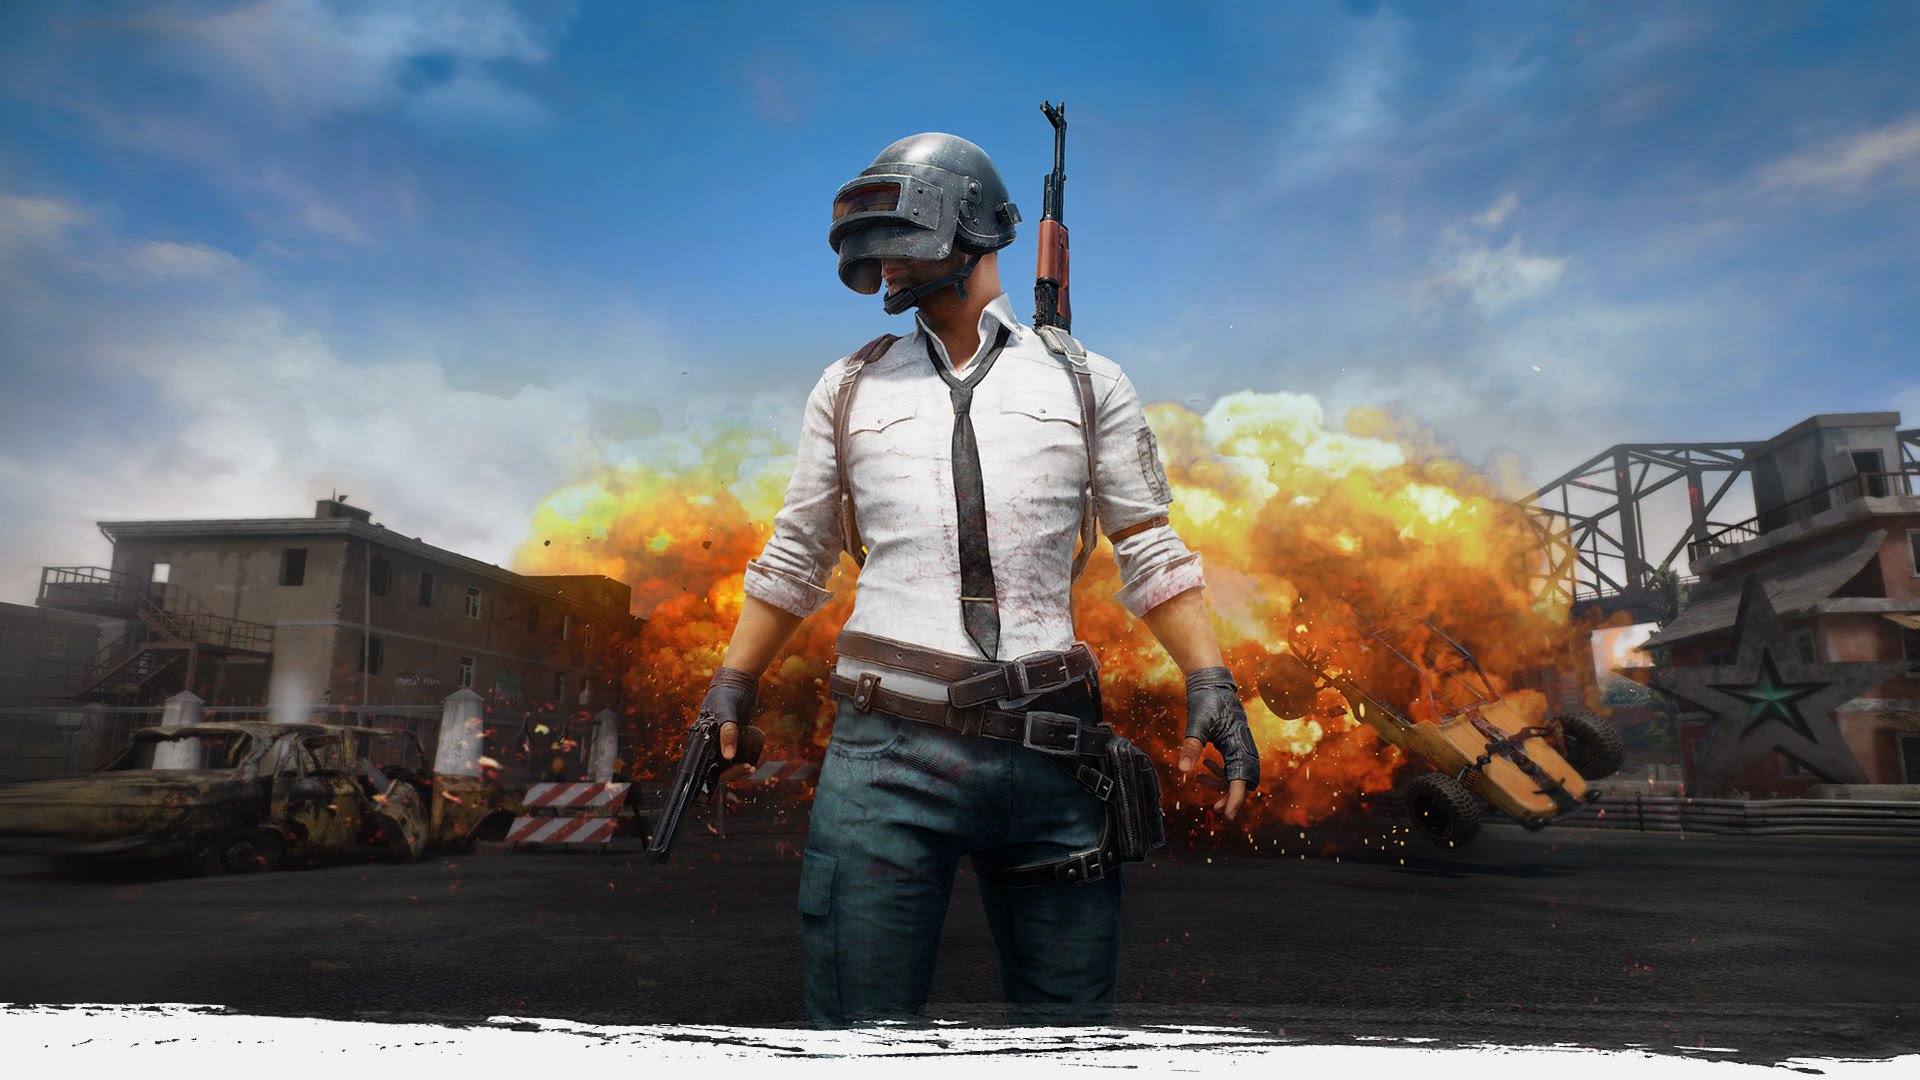 'PlayerUnknown's Battlegrounds' is on sale for $19.99 on Steam right now